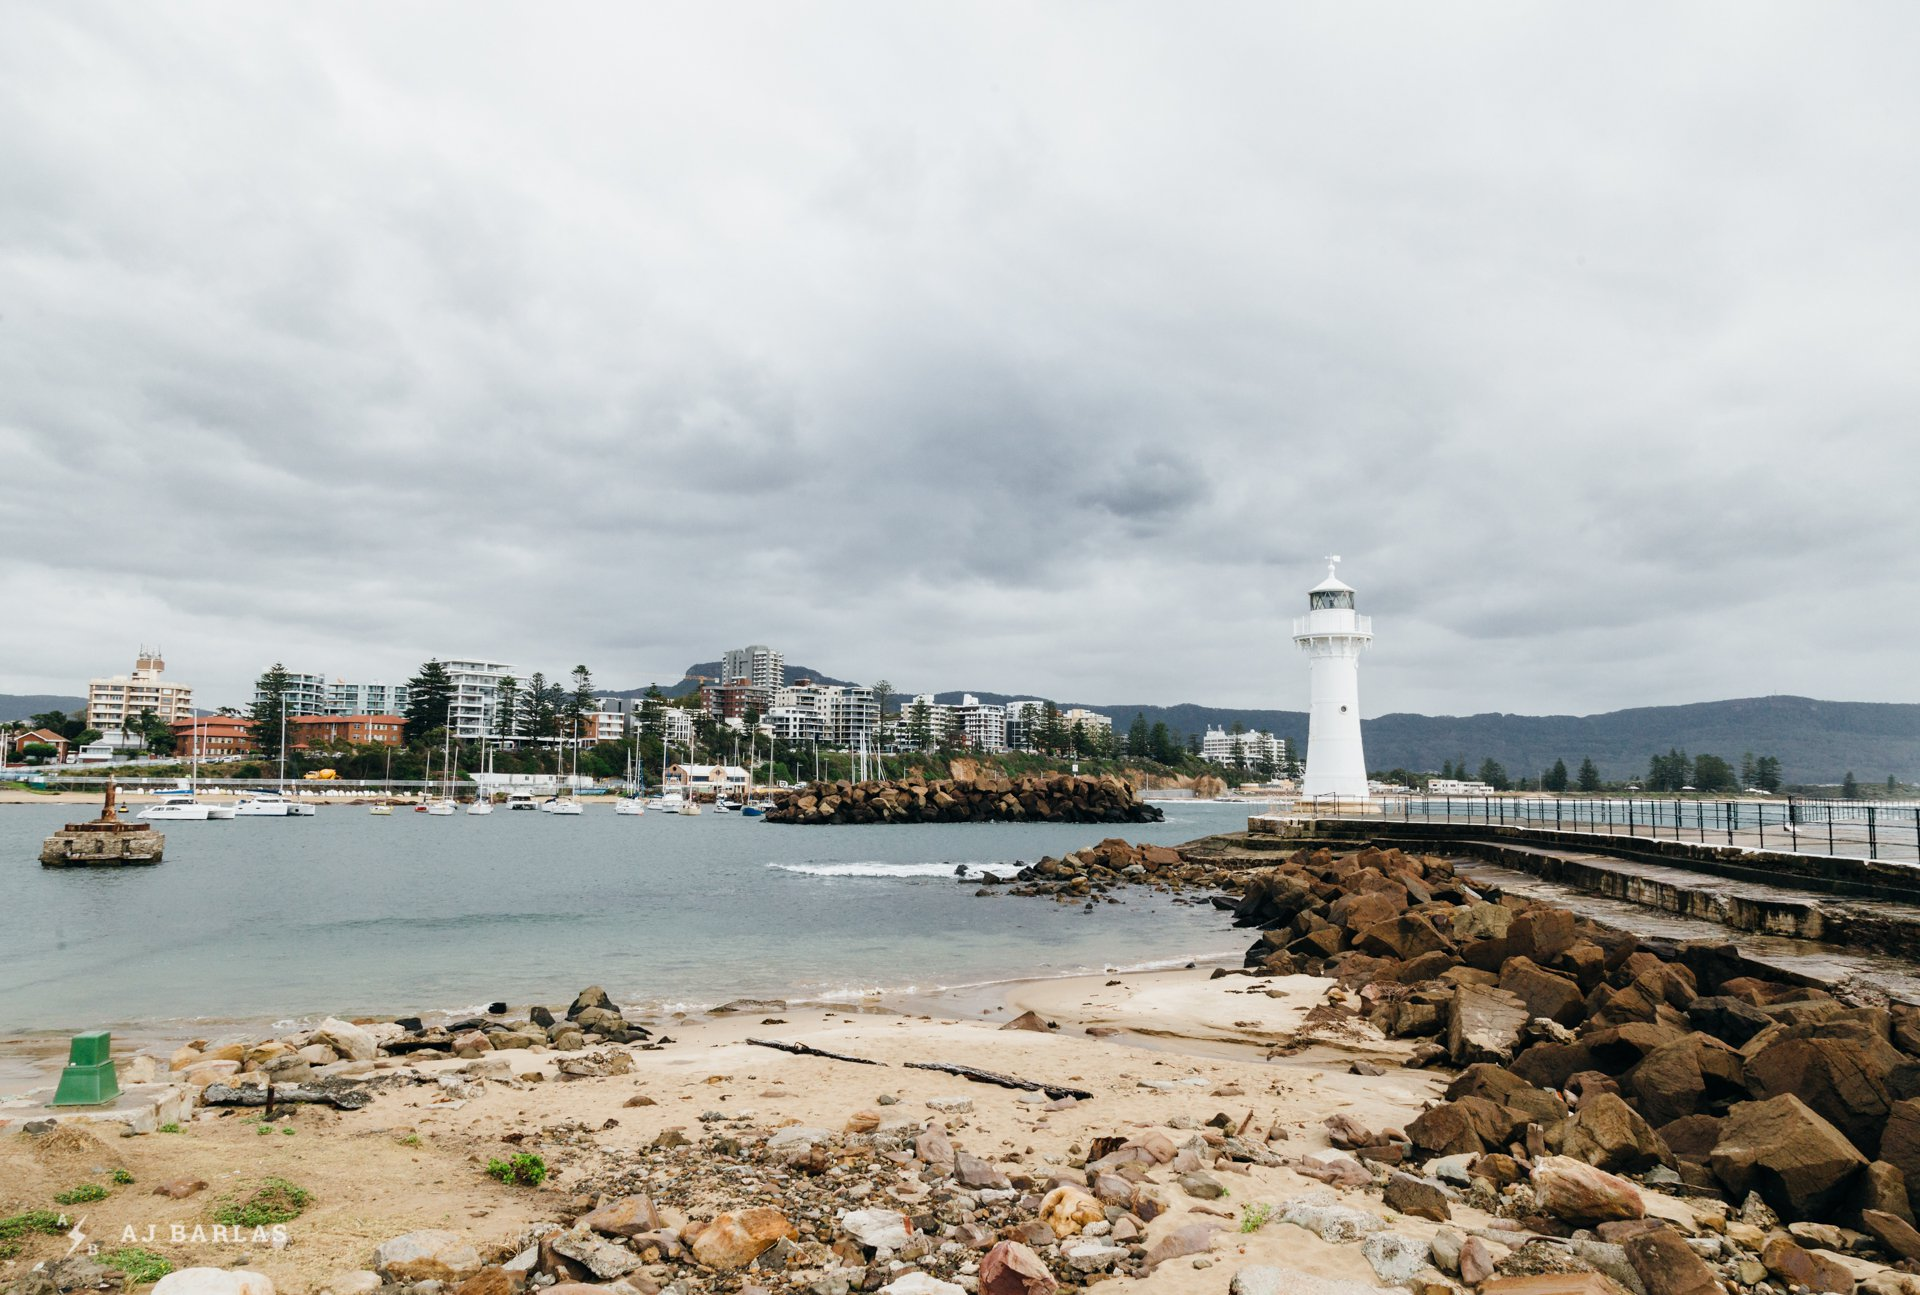 Wollongong from the small harbour.